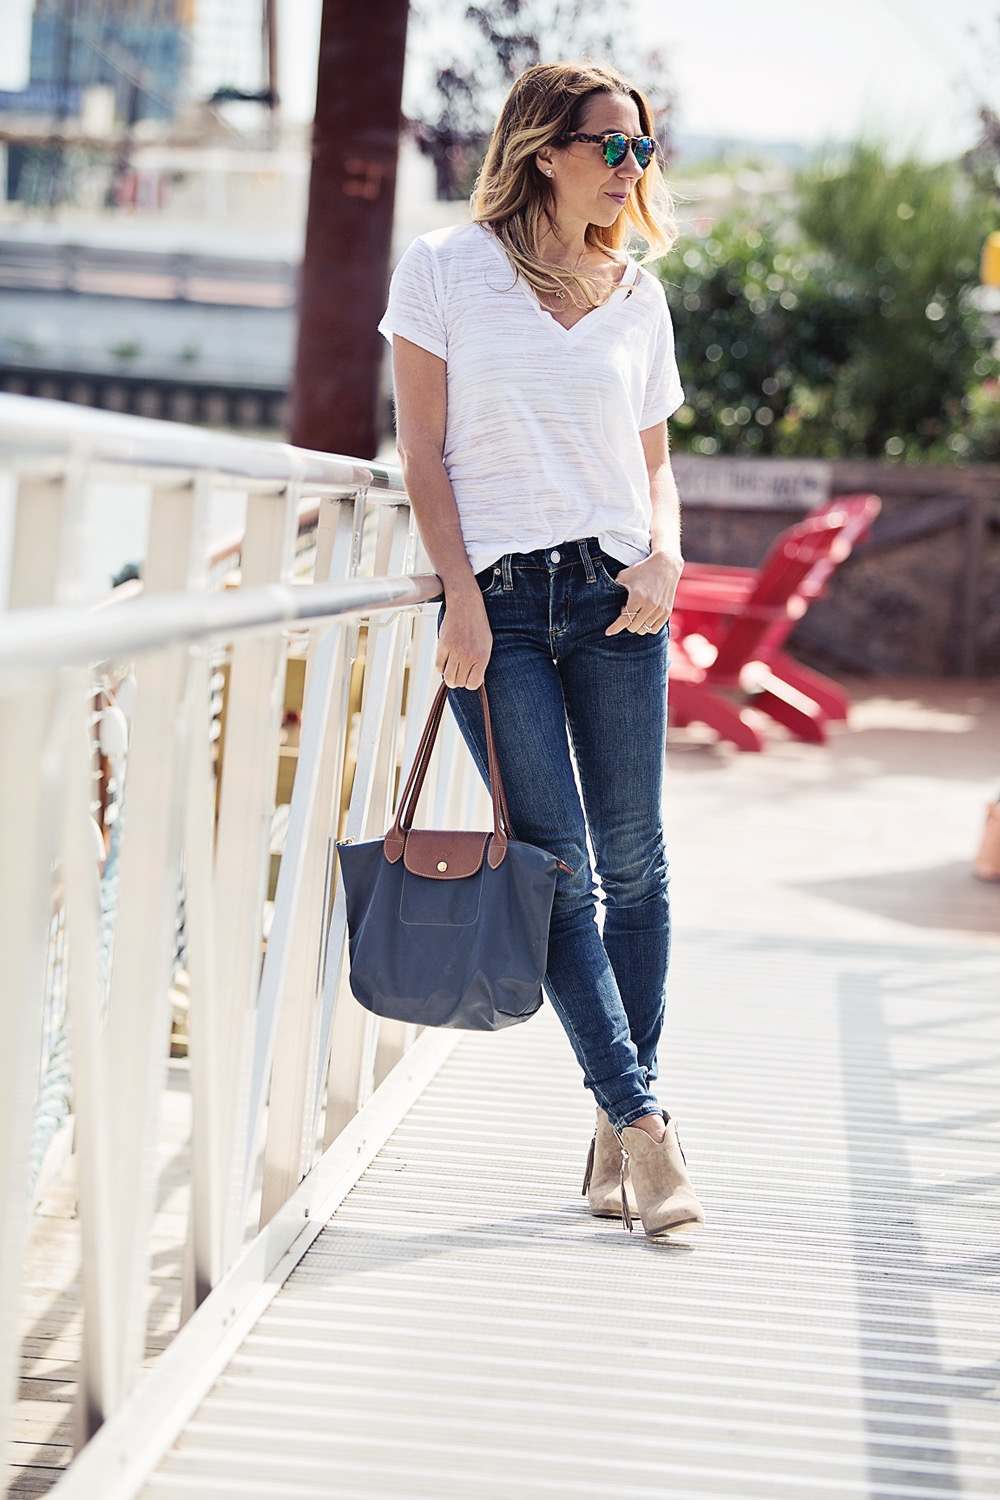 The Motherchic wearing Lush tee and blanknyc denim